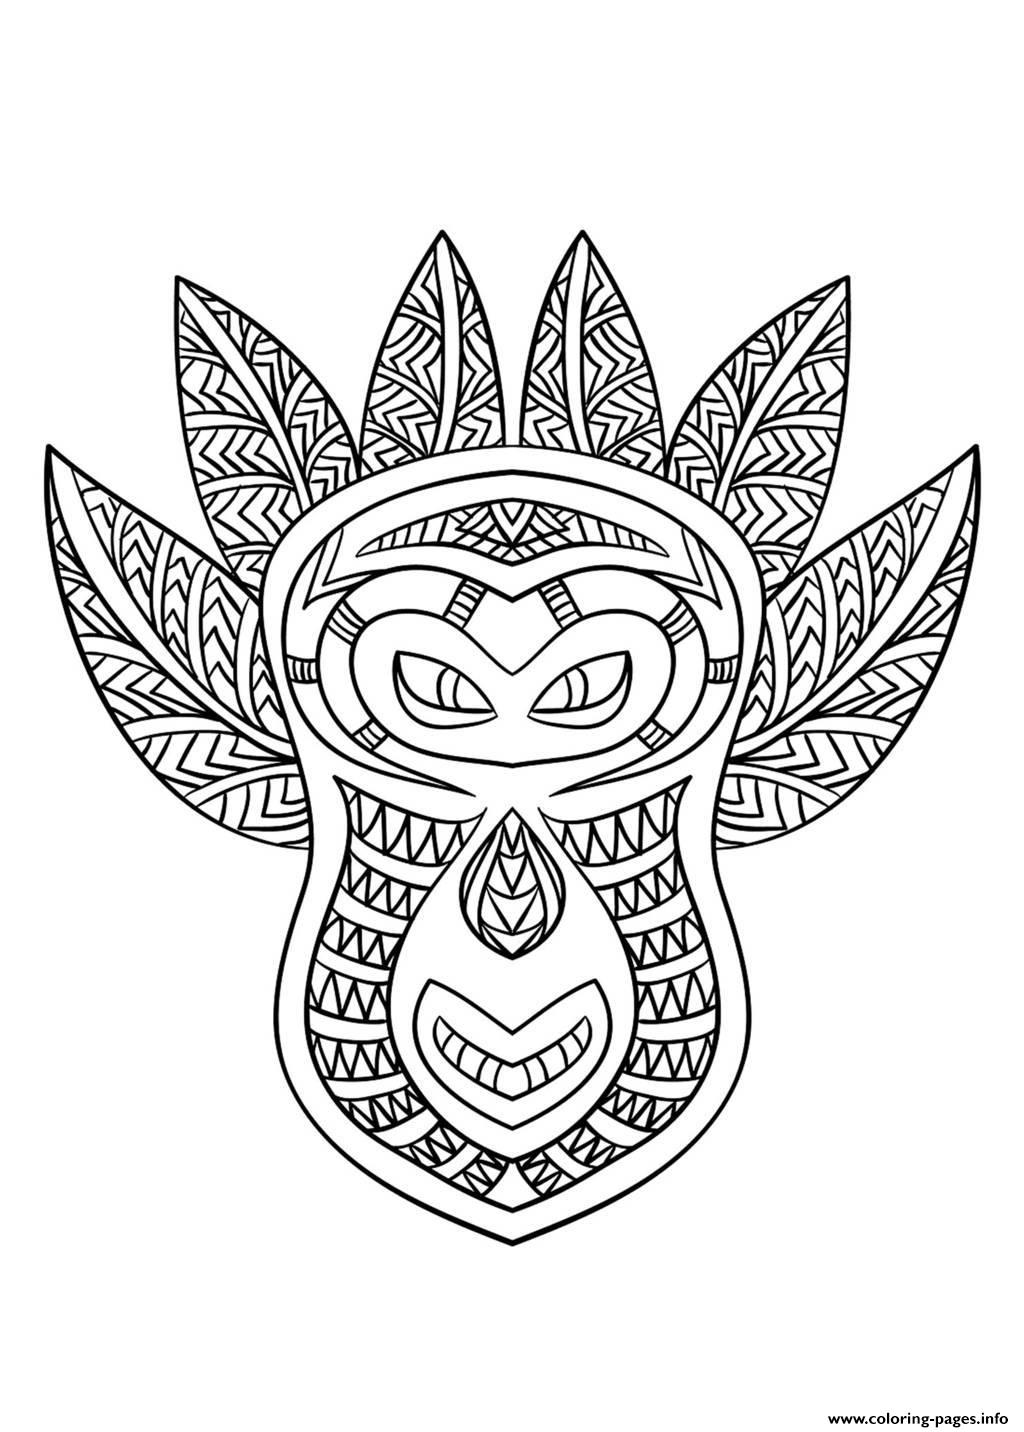 african masks coloring sheets african mask coloring page coloring home sheets masks african coloring